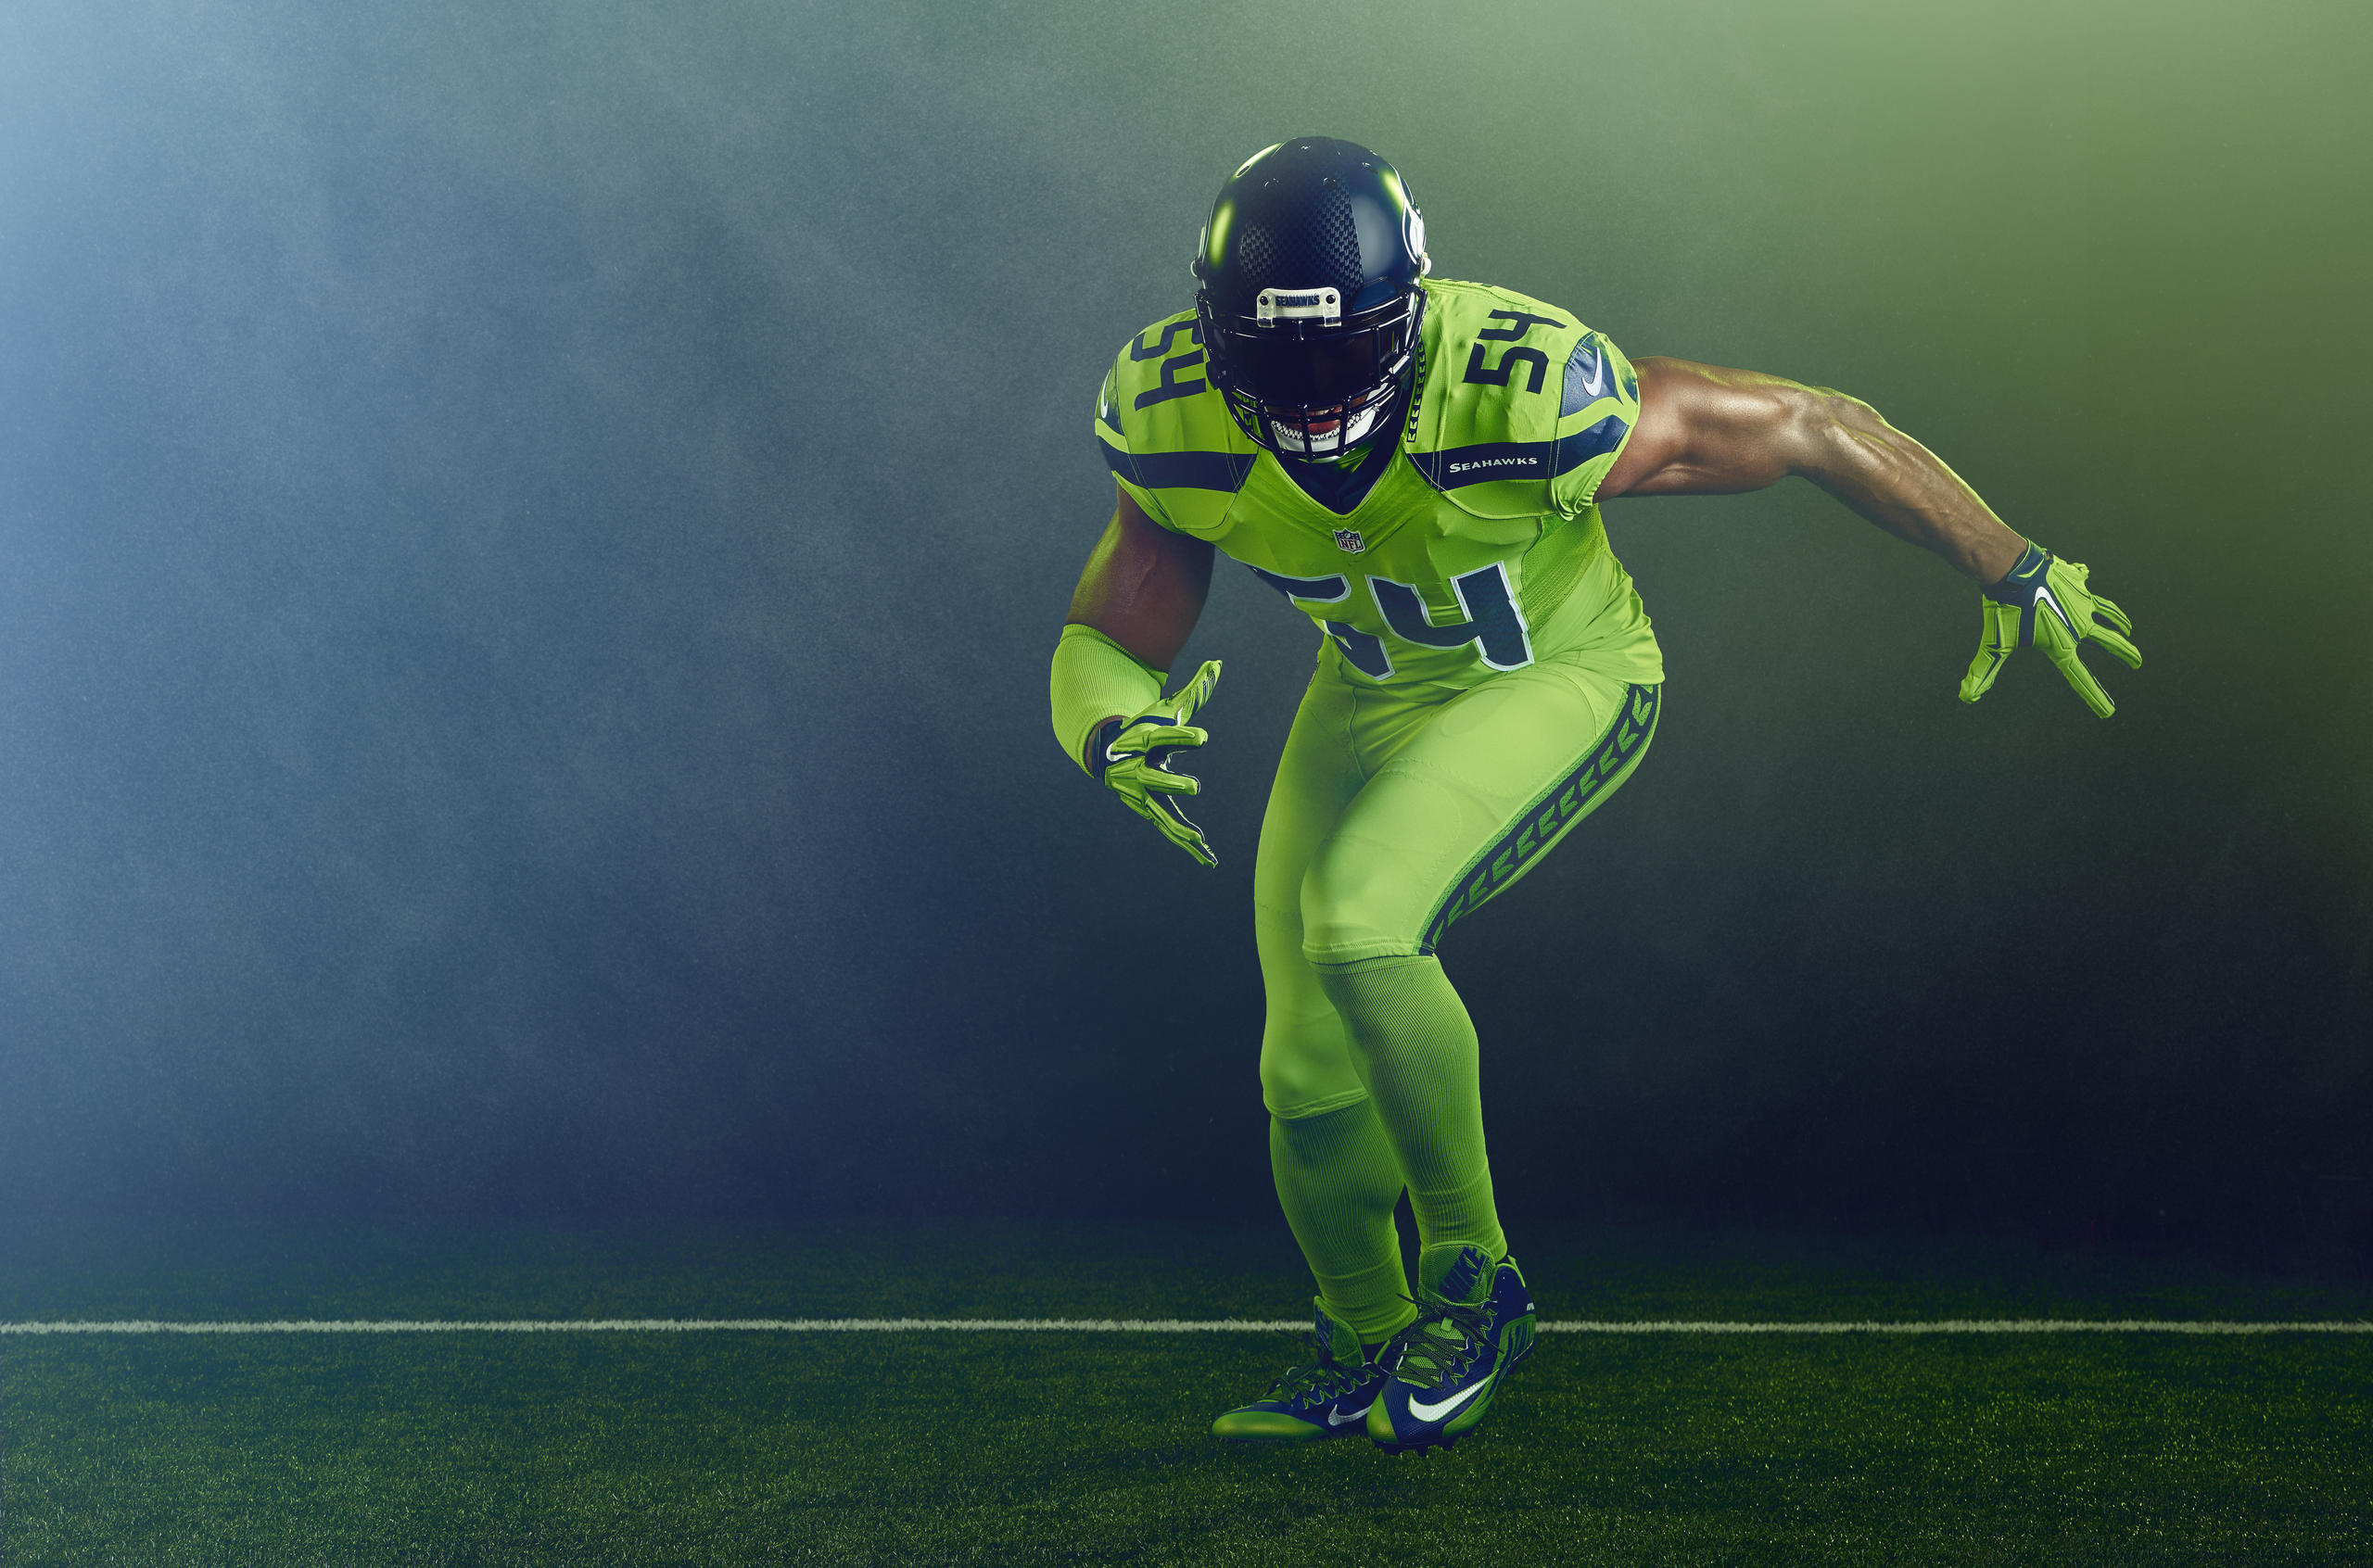 Pictures of the seattle seahawks